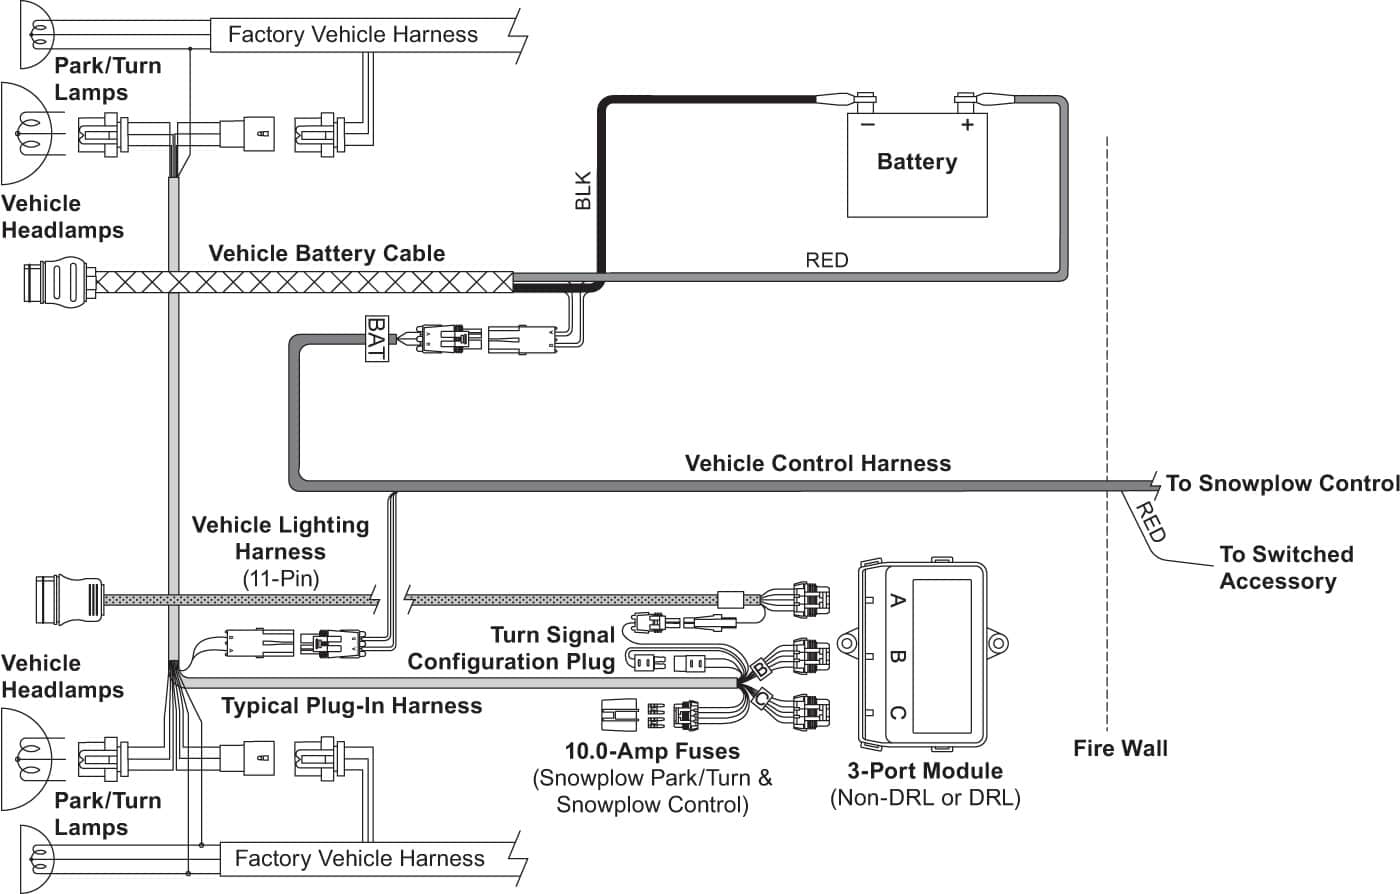 Kfx 700 Wiring Diagram | Wiring Diagram Klx R Wiring Diagram on switch diagrams, friendship bracelet diagrams, engine diagrams, internet of things diagrams, led circuit diagrams, motor diagrams, smart car diagrams, sincgars radio configurations diagrams, electronic circuit diagrams, lighting diagrams, gmc fuse box diagrams, series and parallel circuits diagrams, pinout diagrams, transformer diagrams, electrical diagrams, troubleshooting diagrams, honda motorcycle repair diagrams, hvac diagrams, battery diagrams,